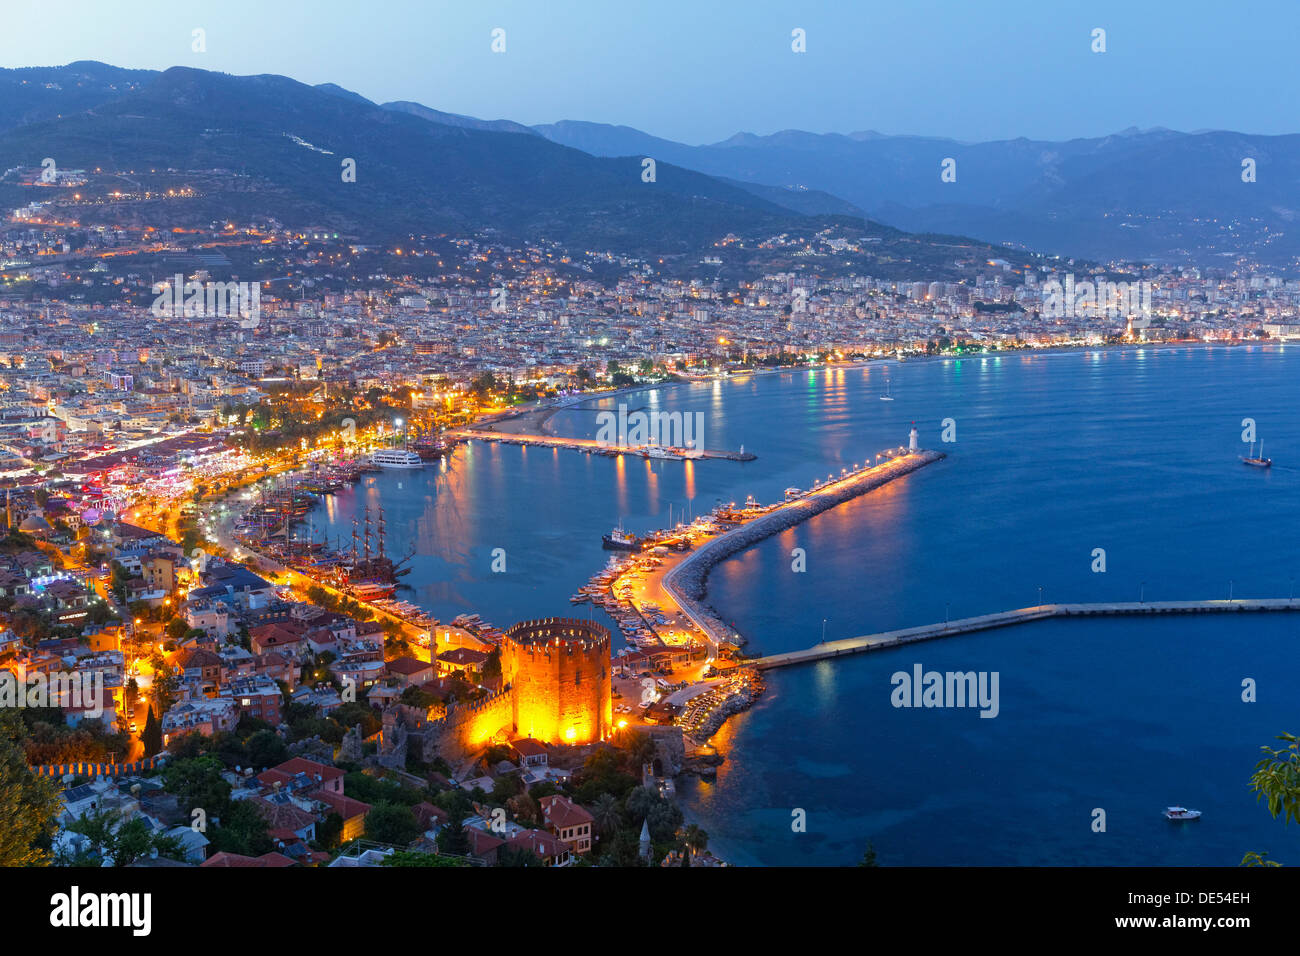 Historic town centre of Alanya with the port and Kızıl Kule or Red Tower, view from Castle Hill, Alanya, Turkish Riviera - Stock Image